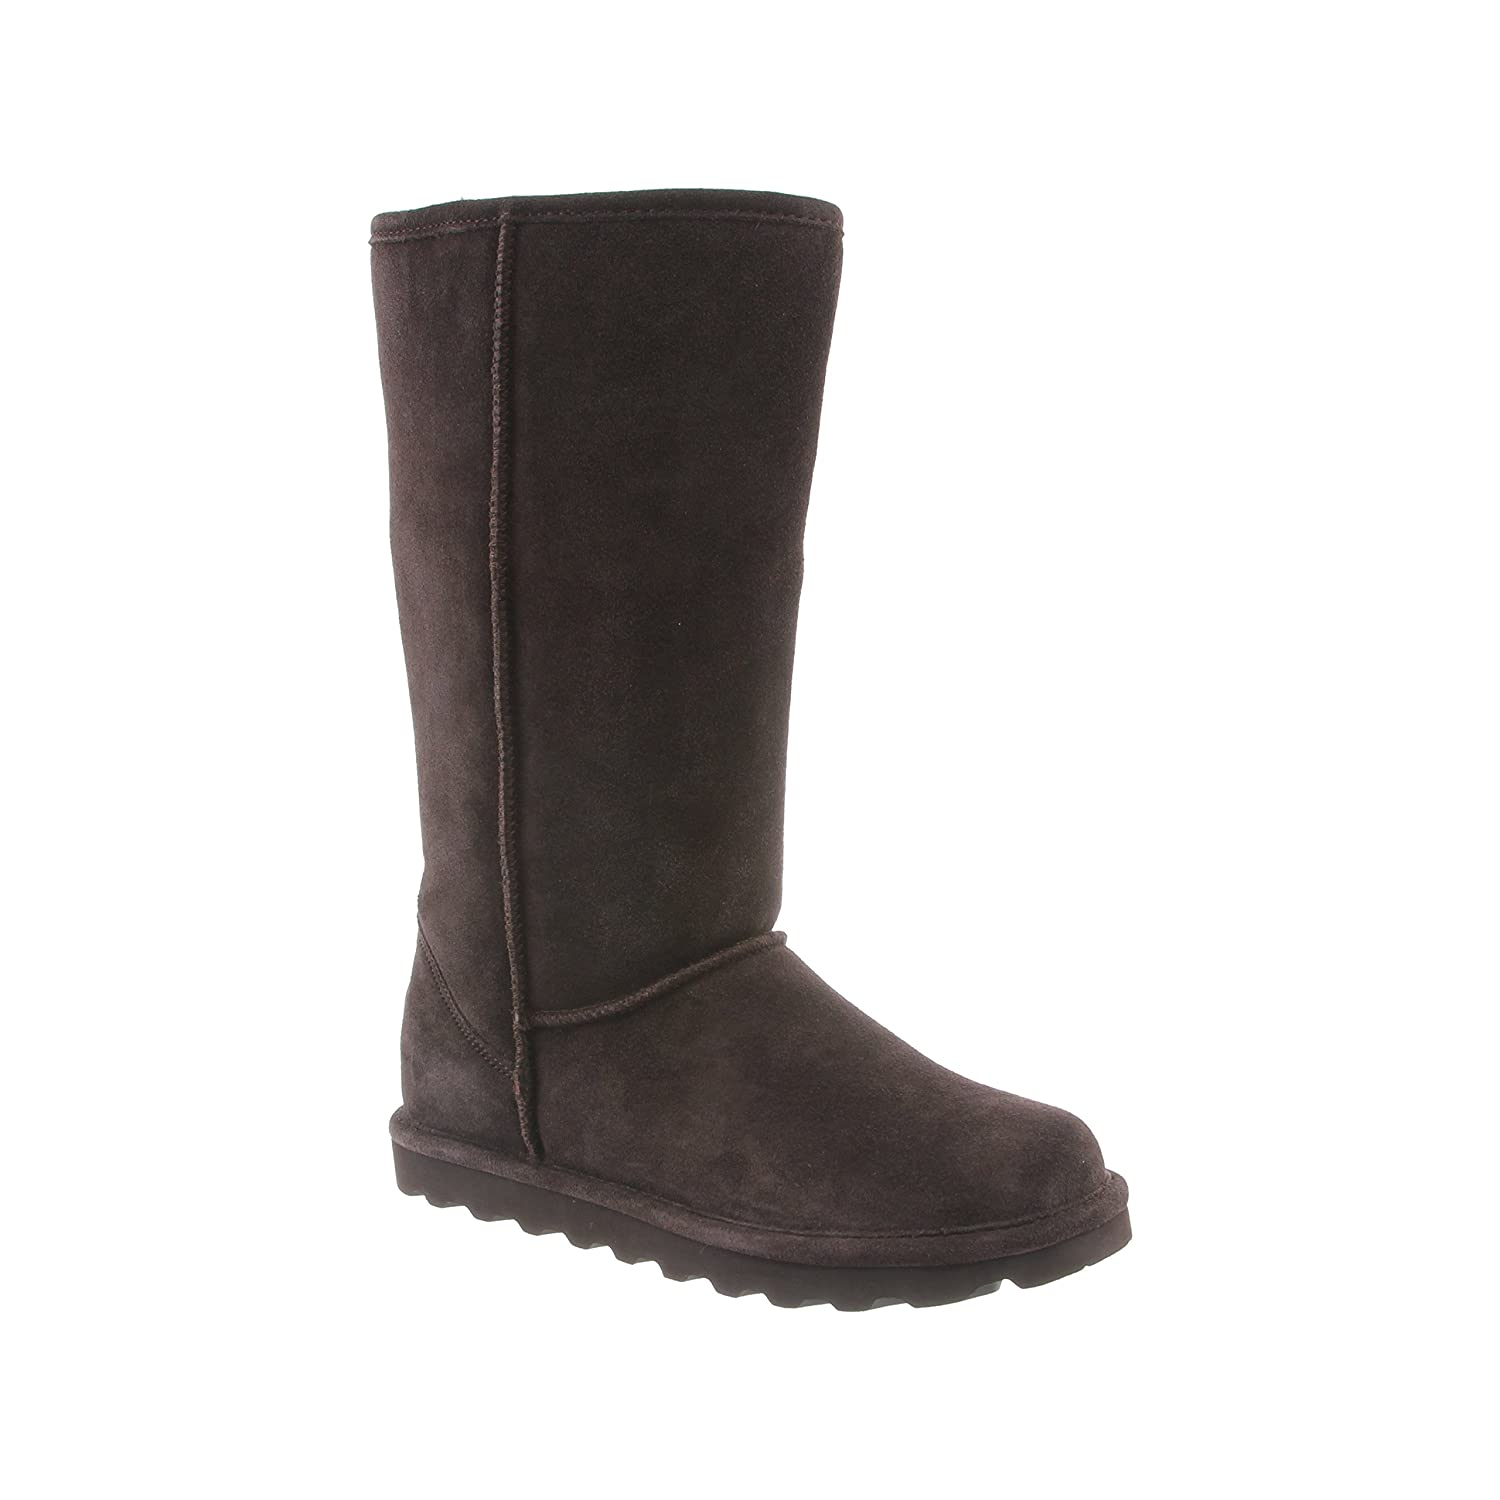 BEARPAW Tall Mid-Calf Suede Boots - NeverWet Stain and Liquid Repellent -Elle by B0752ZH6M3 11 B(M) US / 42 M EU|Chocolate